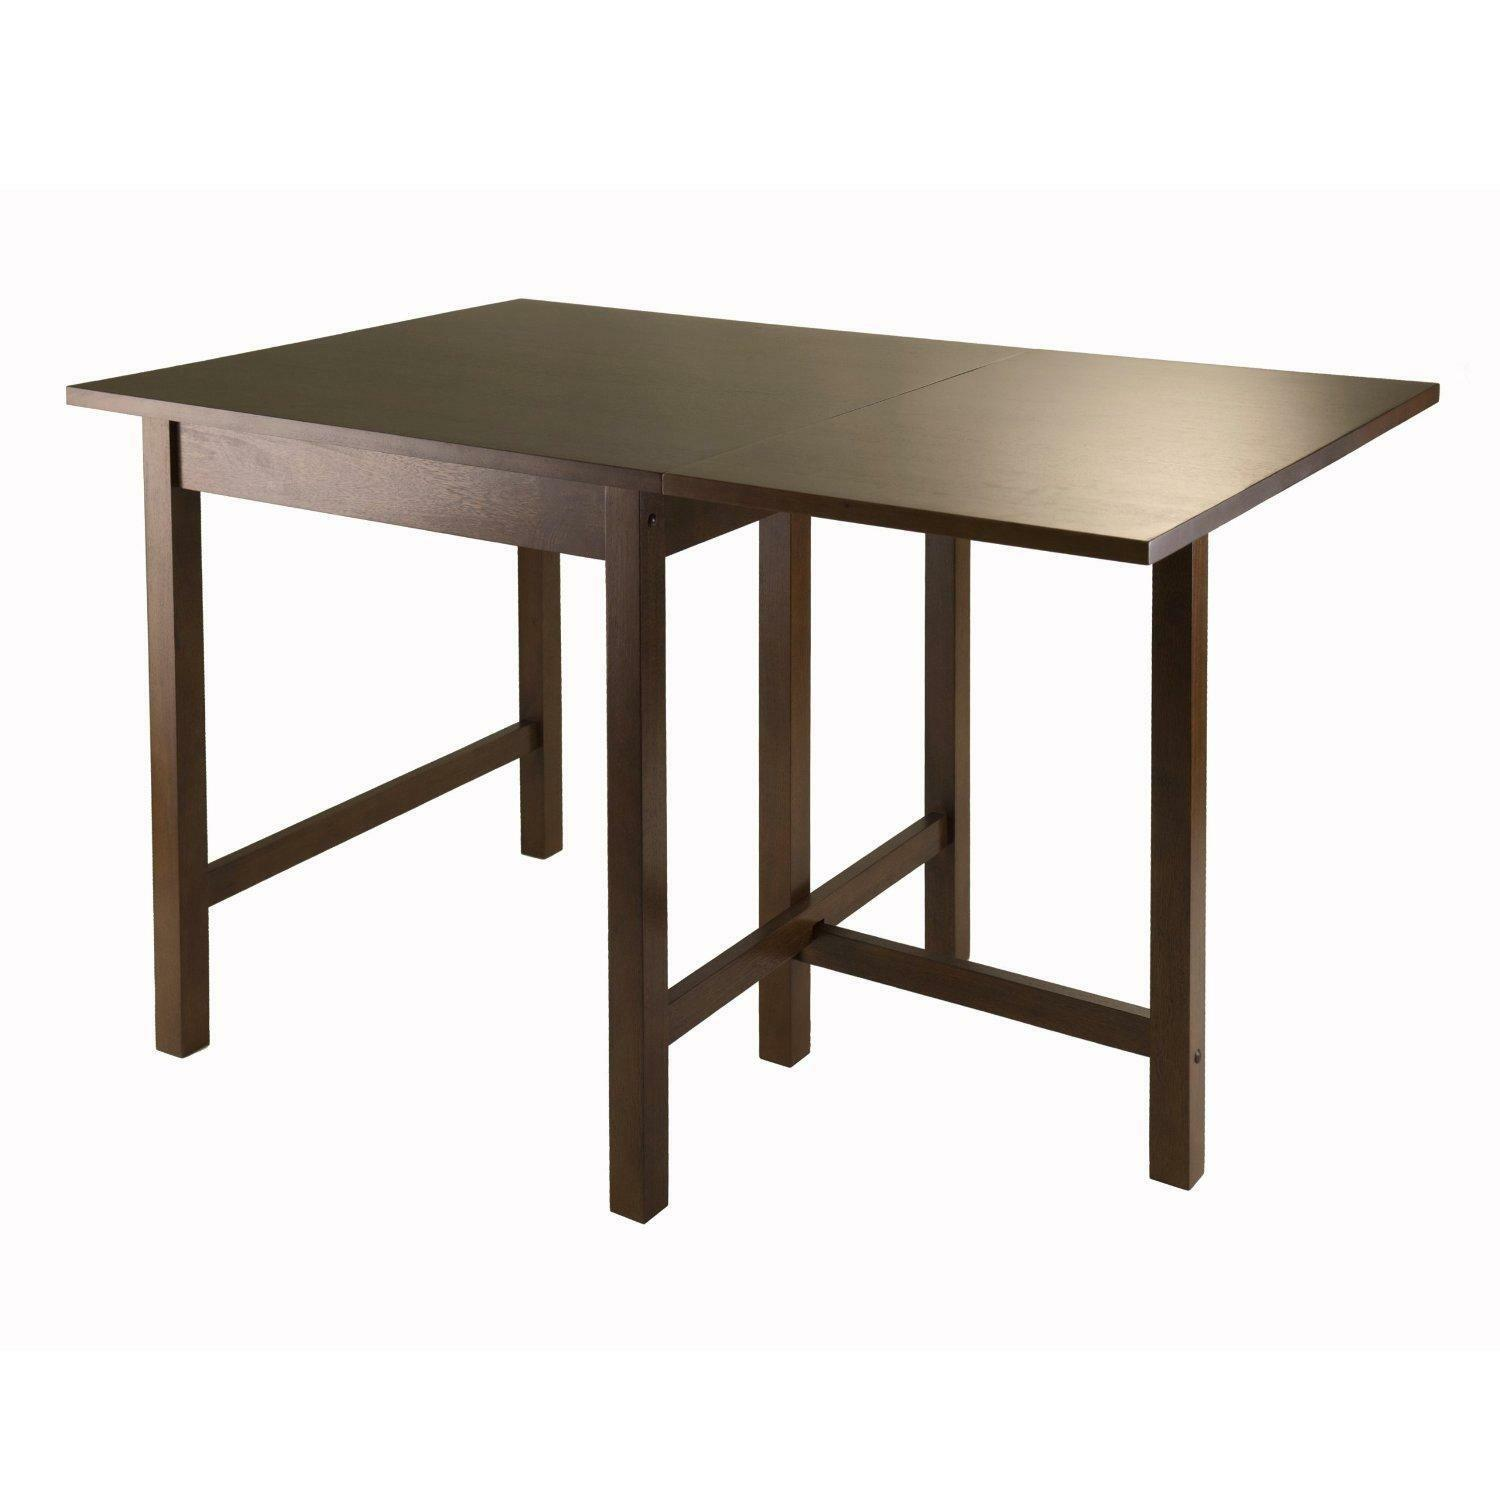 Smalle Tafel Drop Leaf Dining Table Ebay